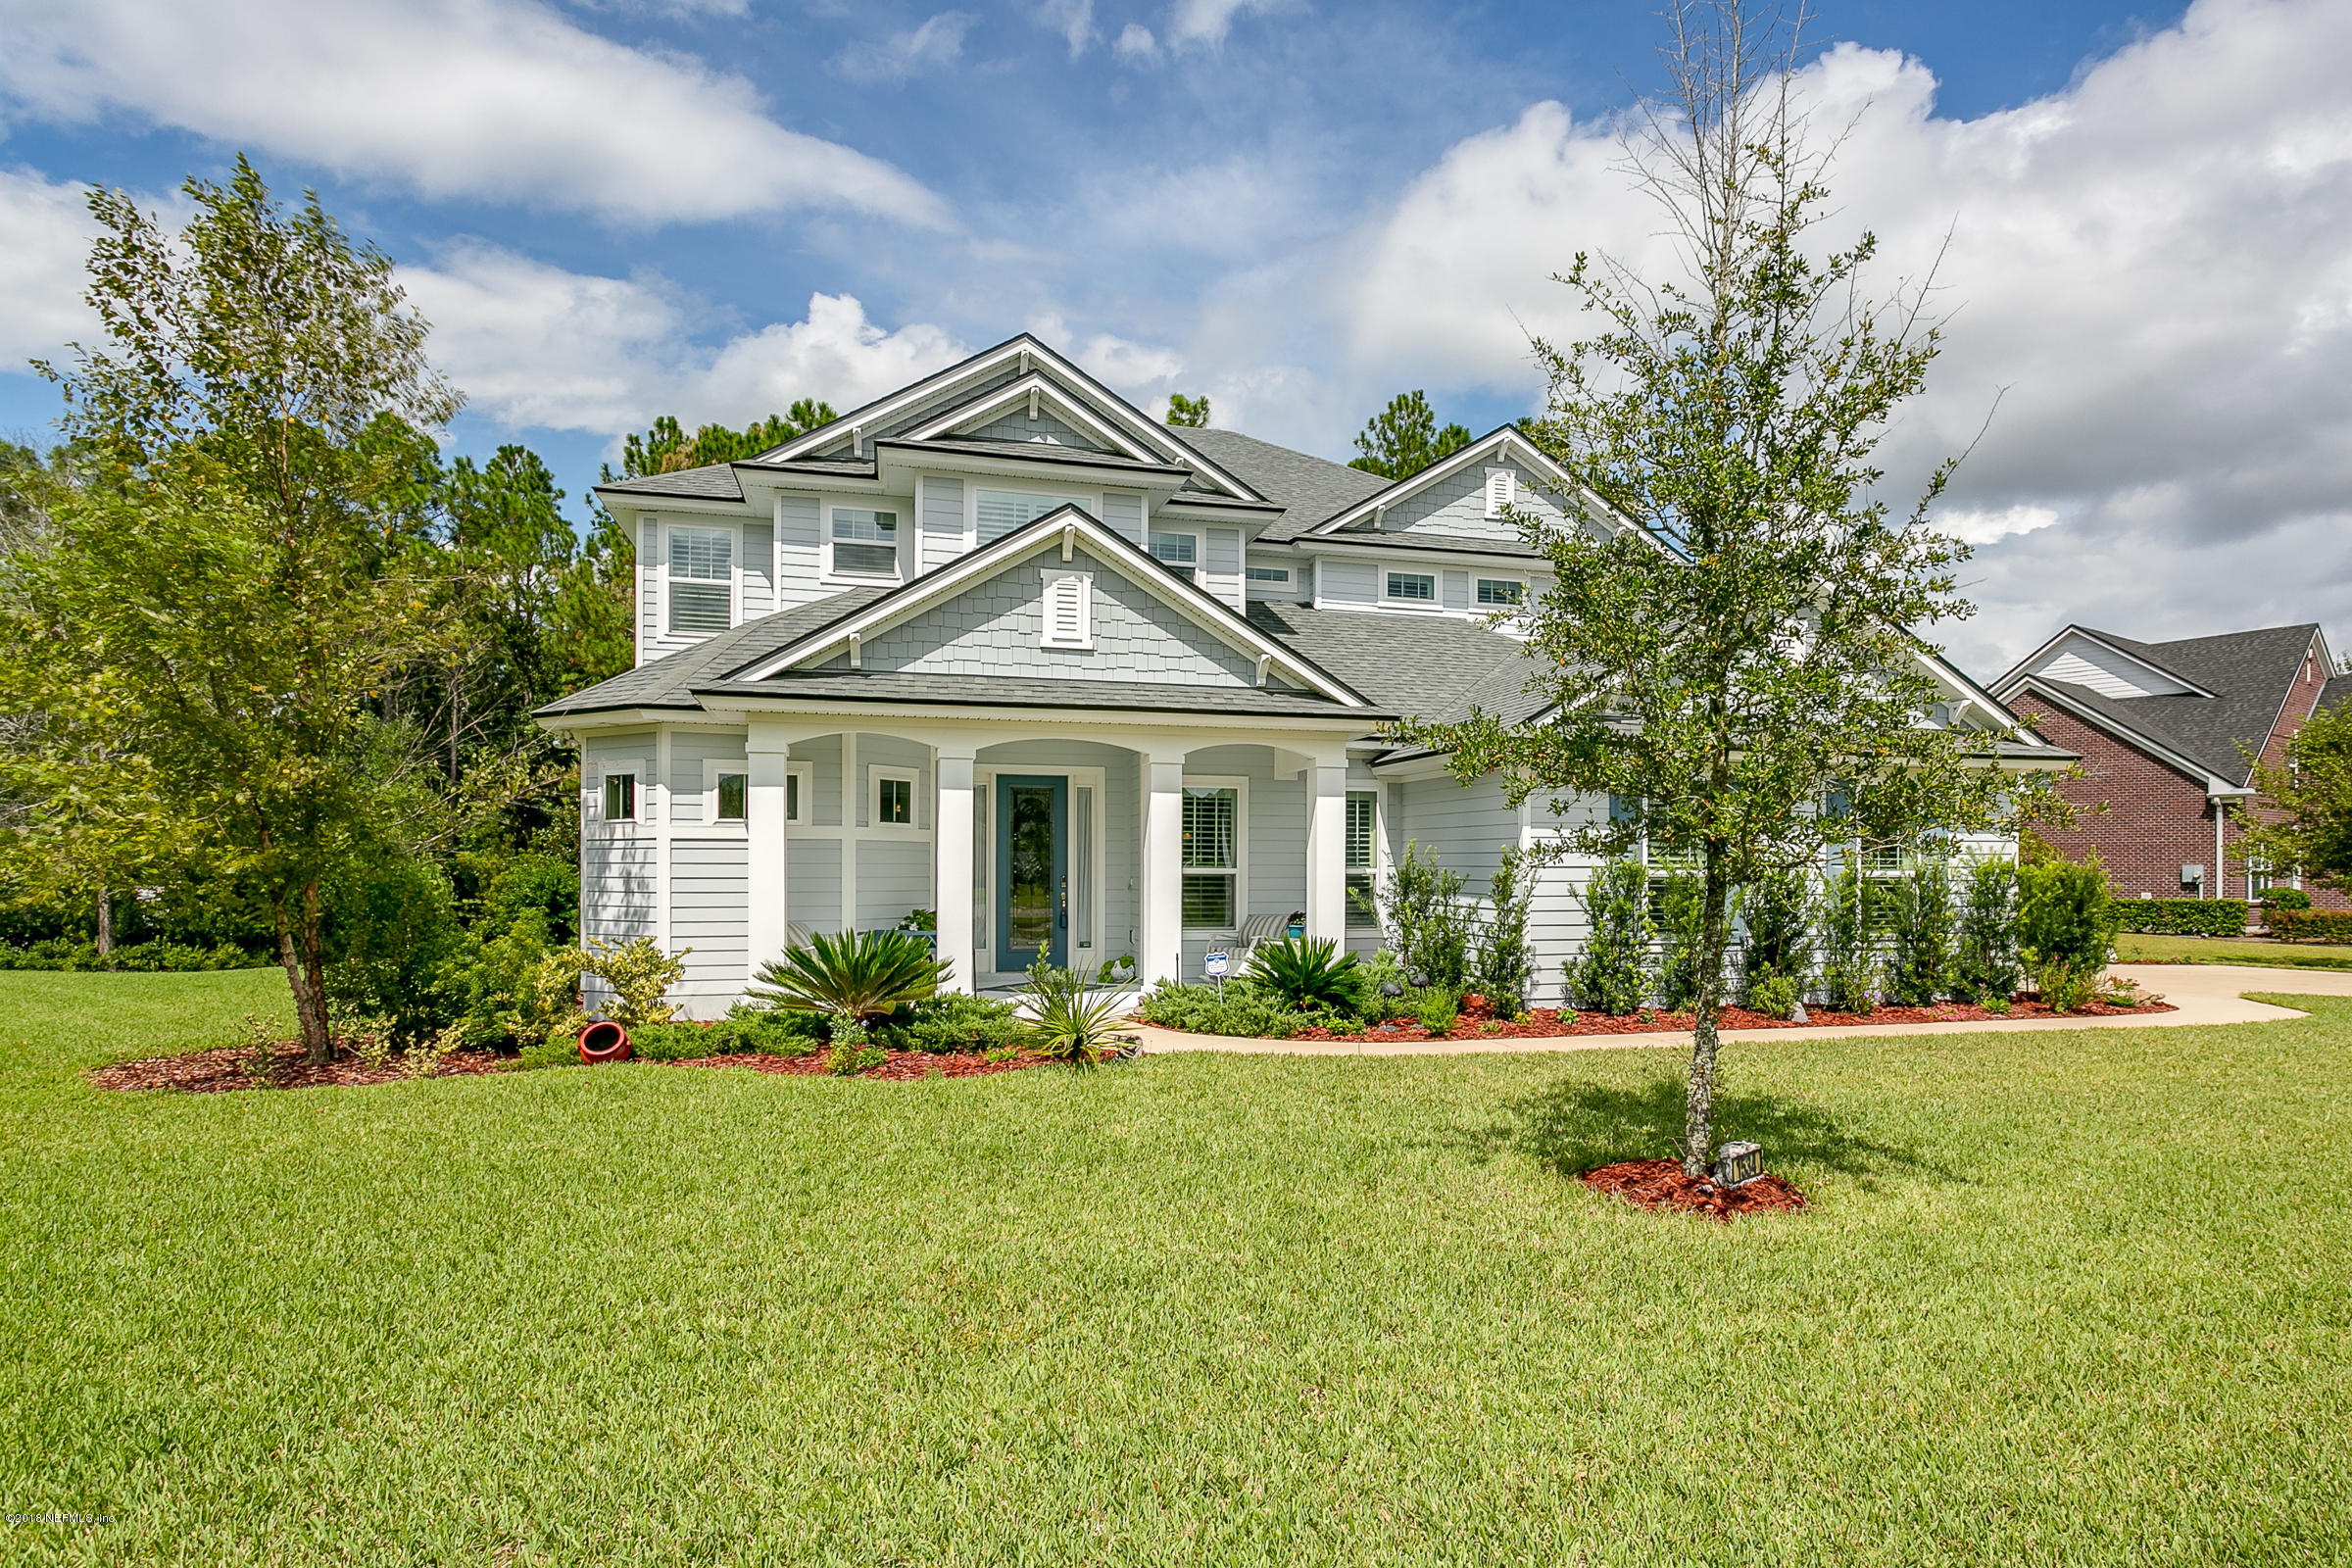 1534 BAY FOREST, ORANGE PARK, FLORIDA 32065, 5 Bedrooms Bedrooms, ,4 BathroomsBathrooms,Residential - single family,For sale,BAY FOREST,959413